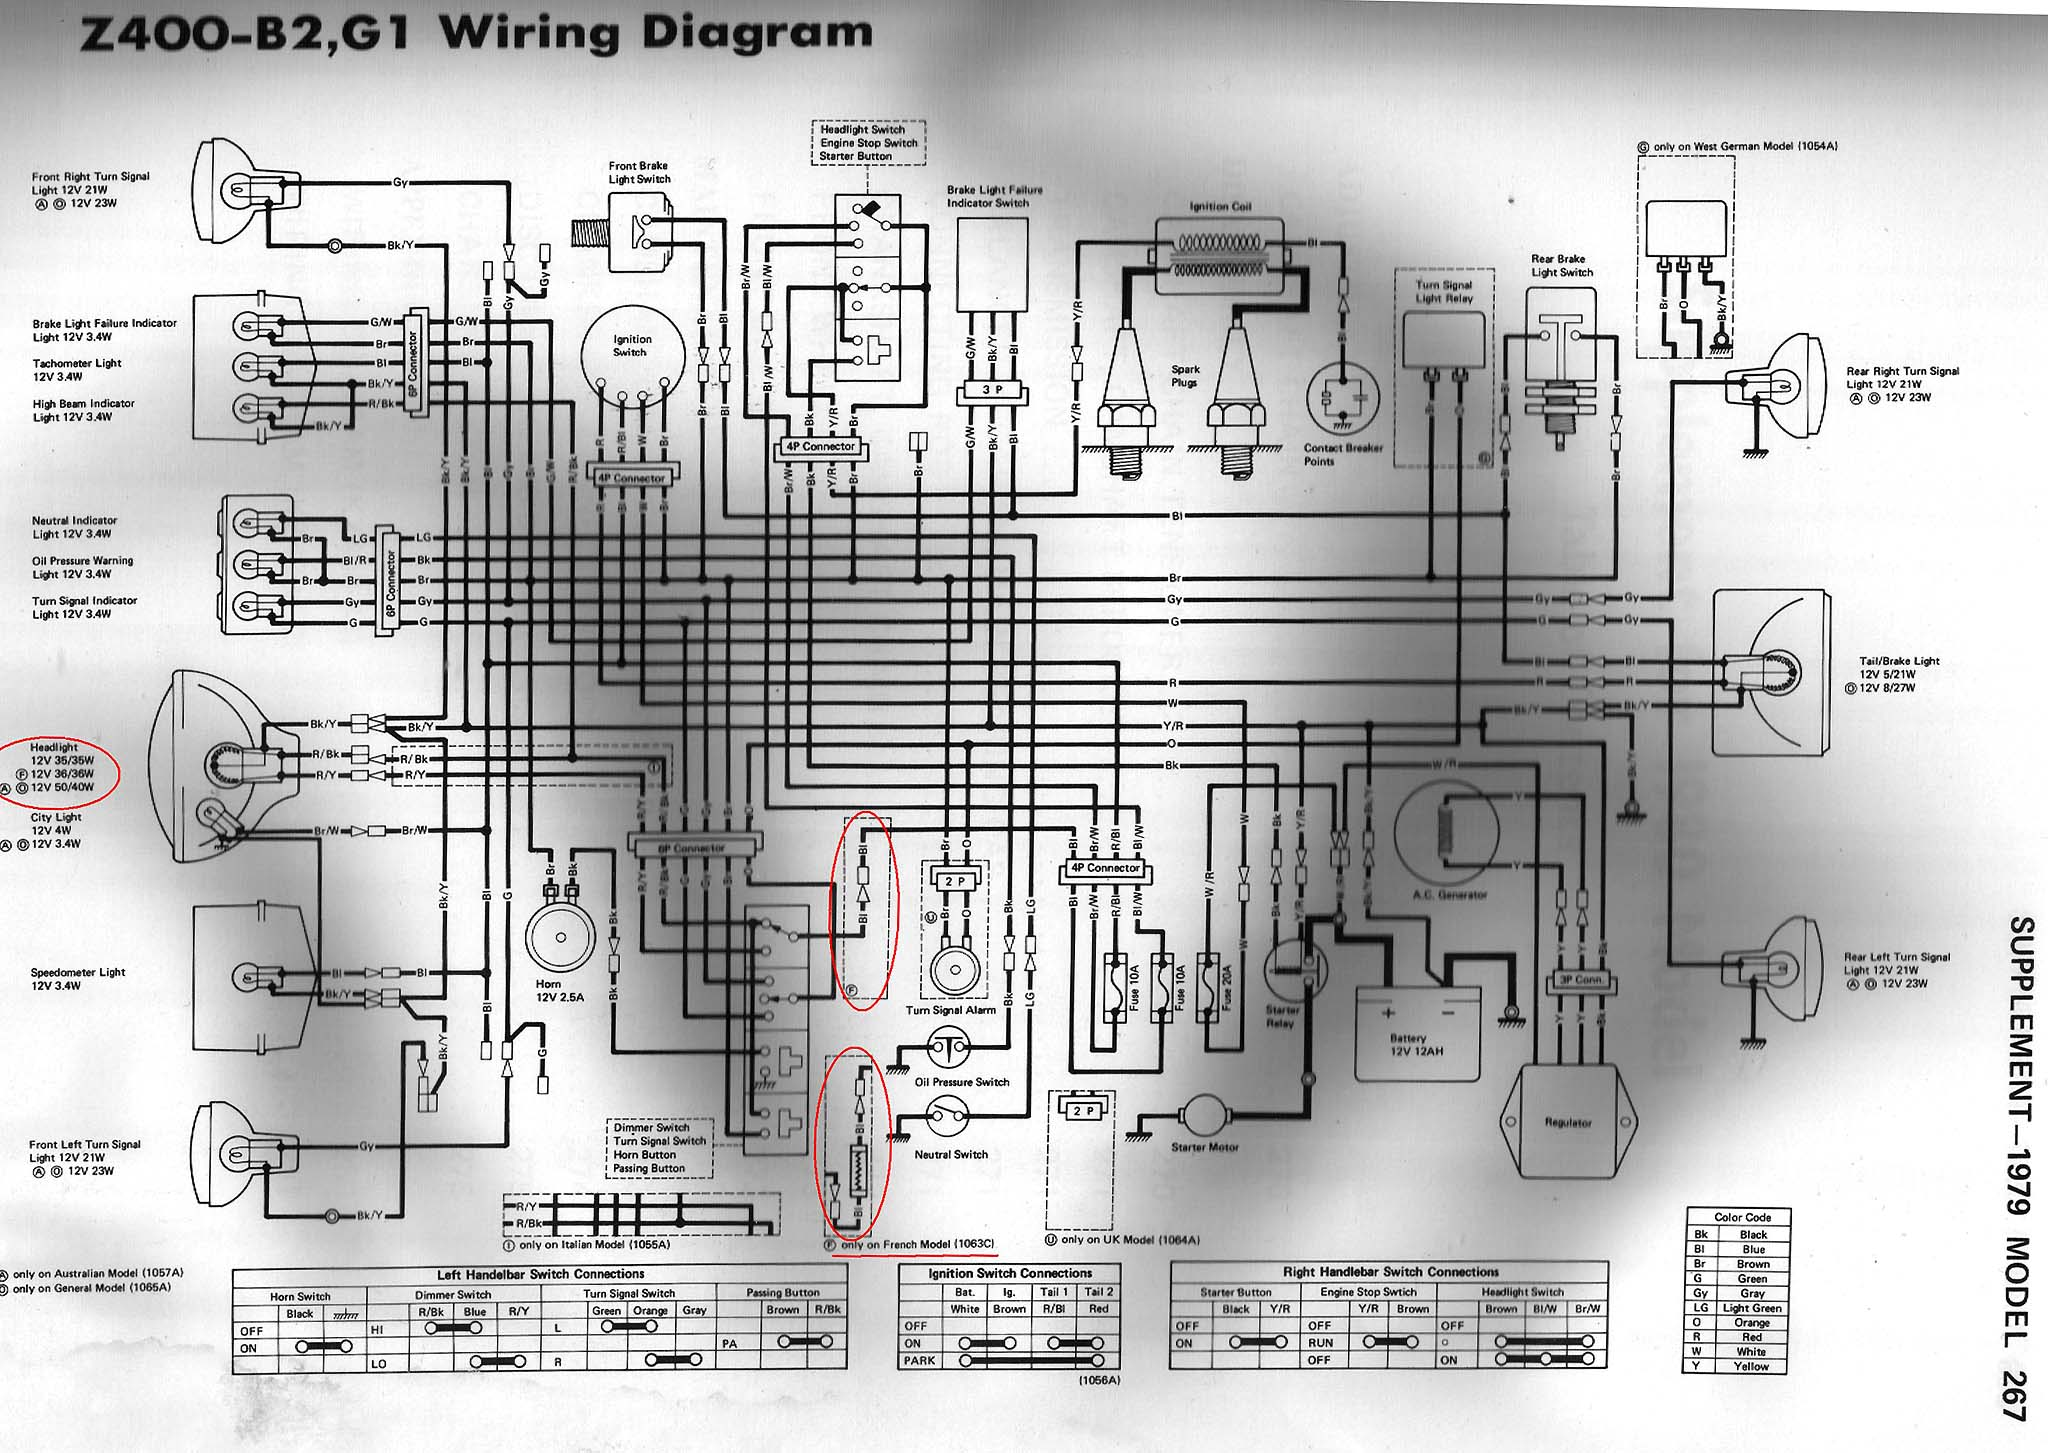 1980 Chevy Truck Wiring Diagram As Well Chevy Truck Wiring Diagram